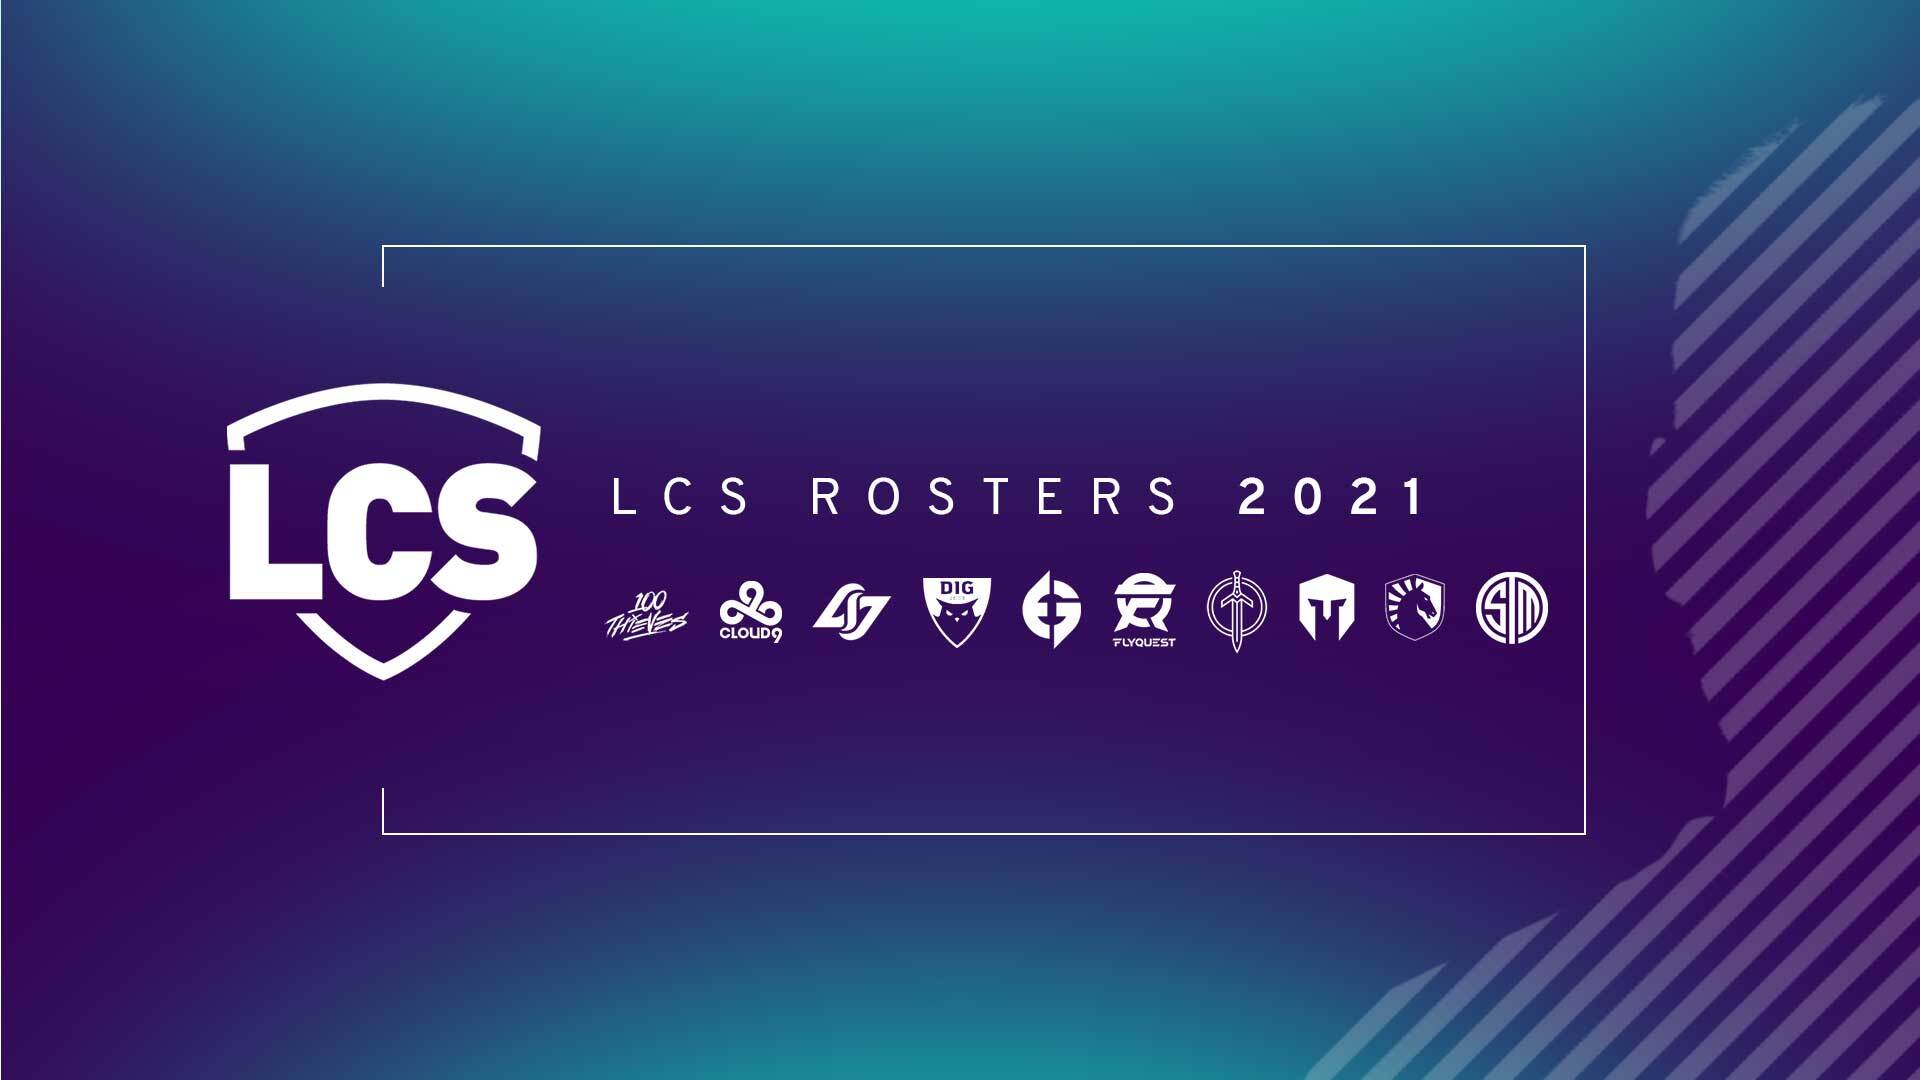 Top 5 LCS Roster Moves Summer 2021